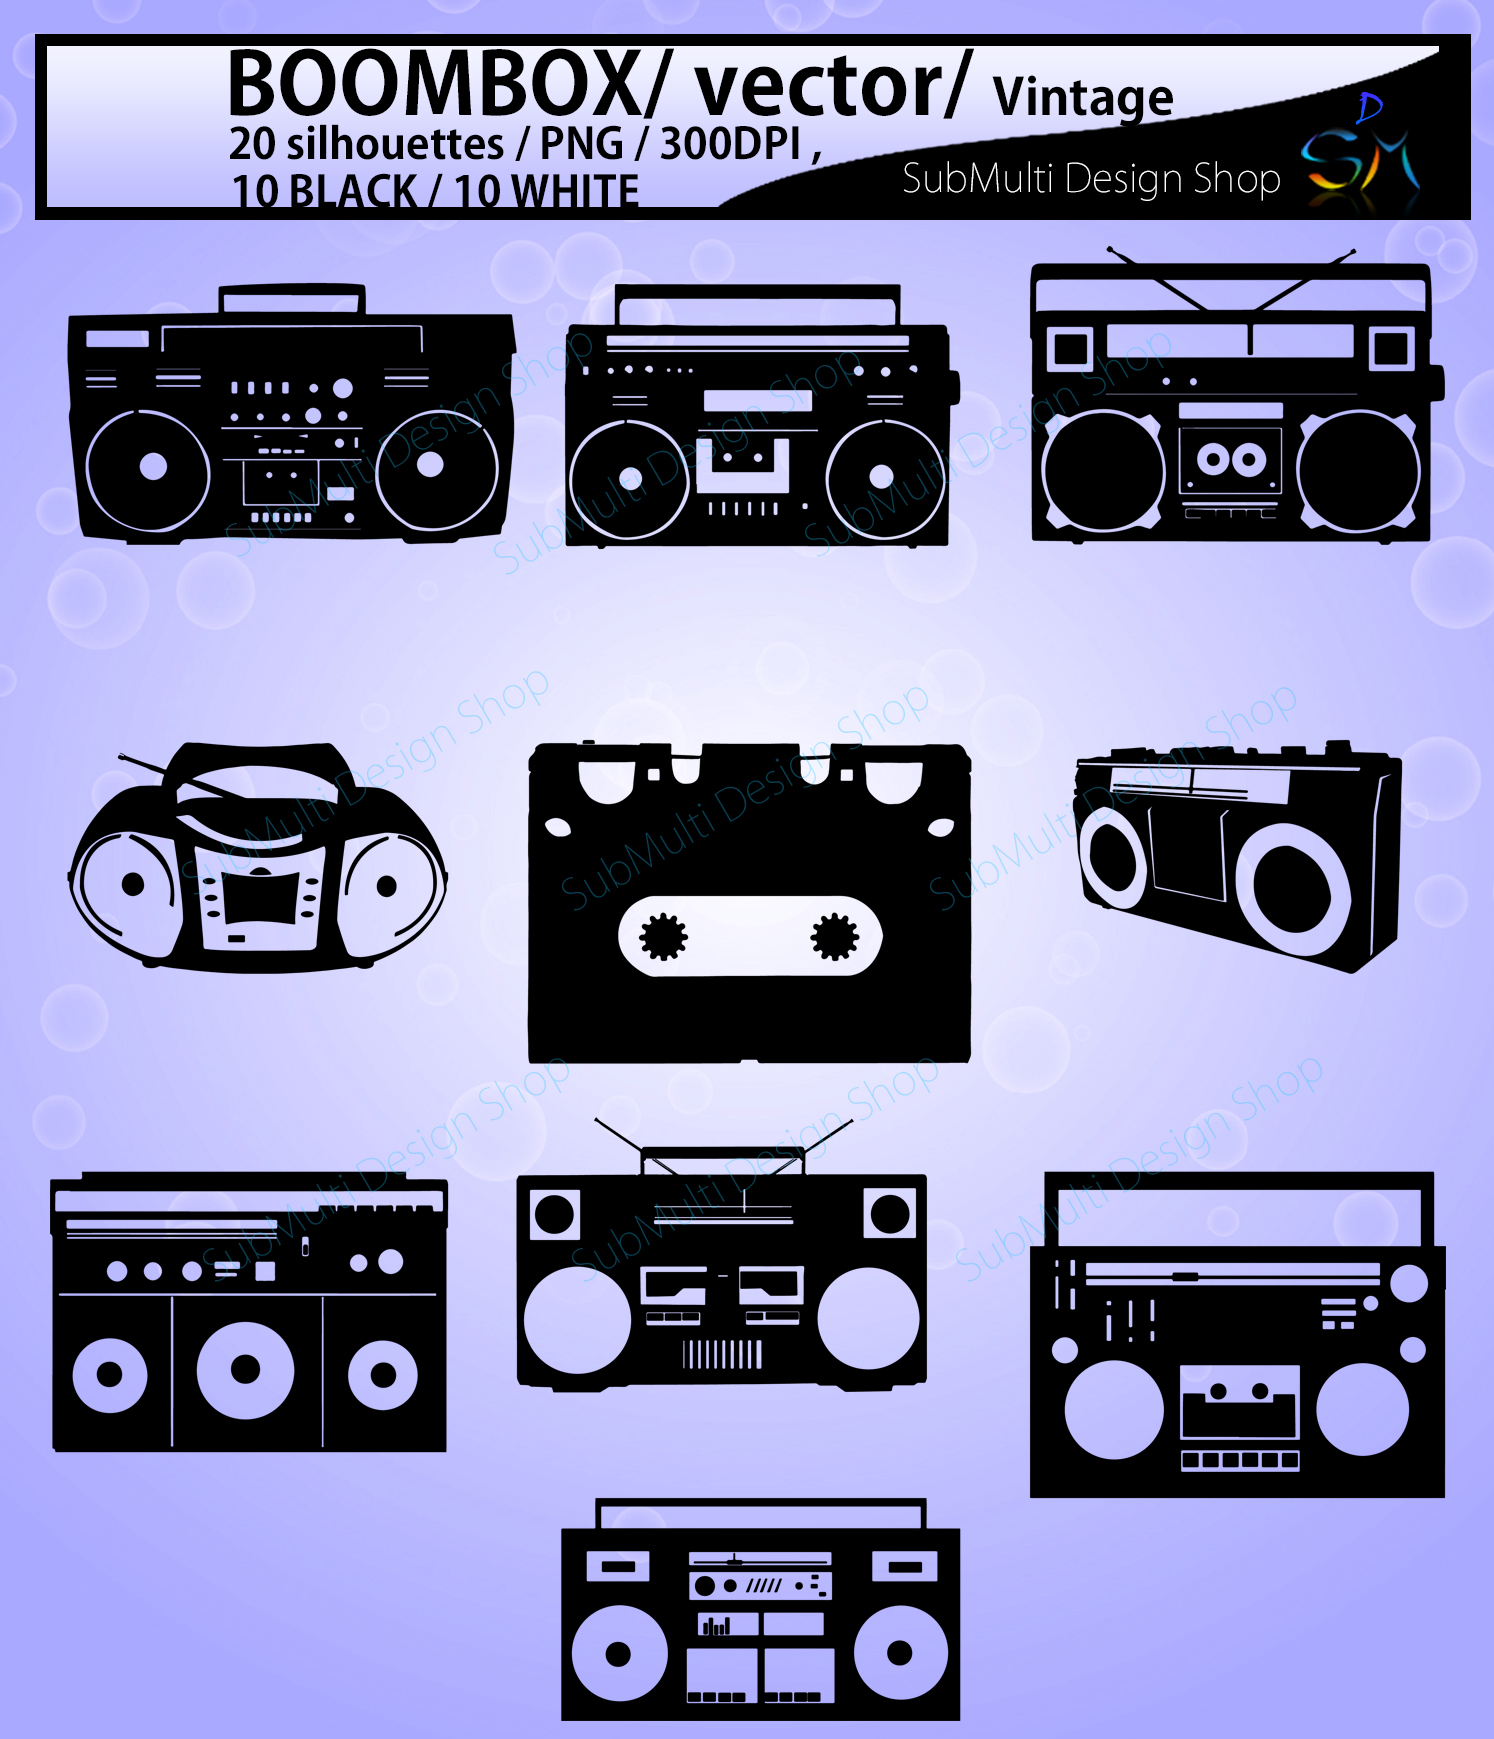 Boombox silhouette svg / 10B + 10W Boombox / Boombox digital clipart / vintage silhouette / SVG / tape recorder / vector example image 2